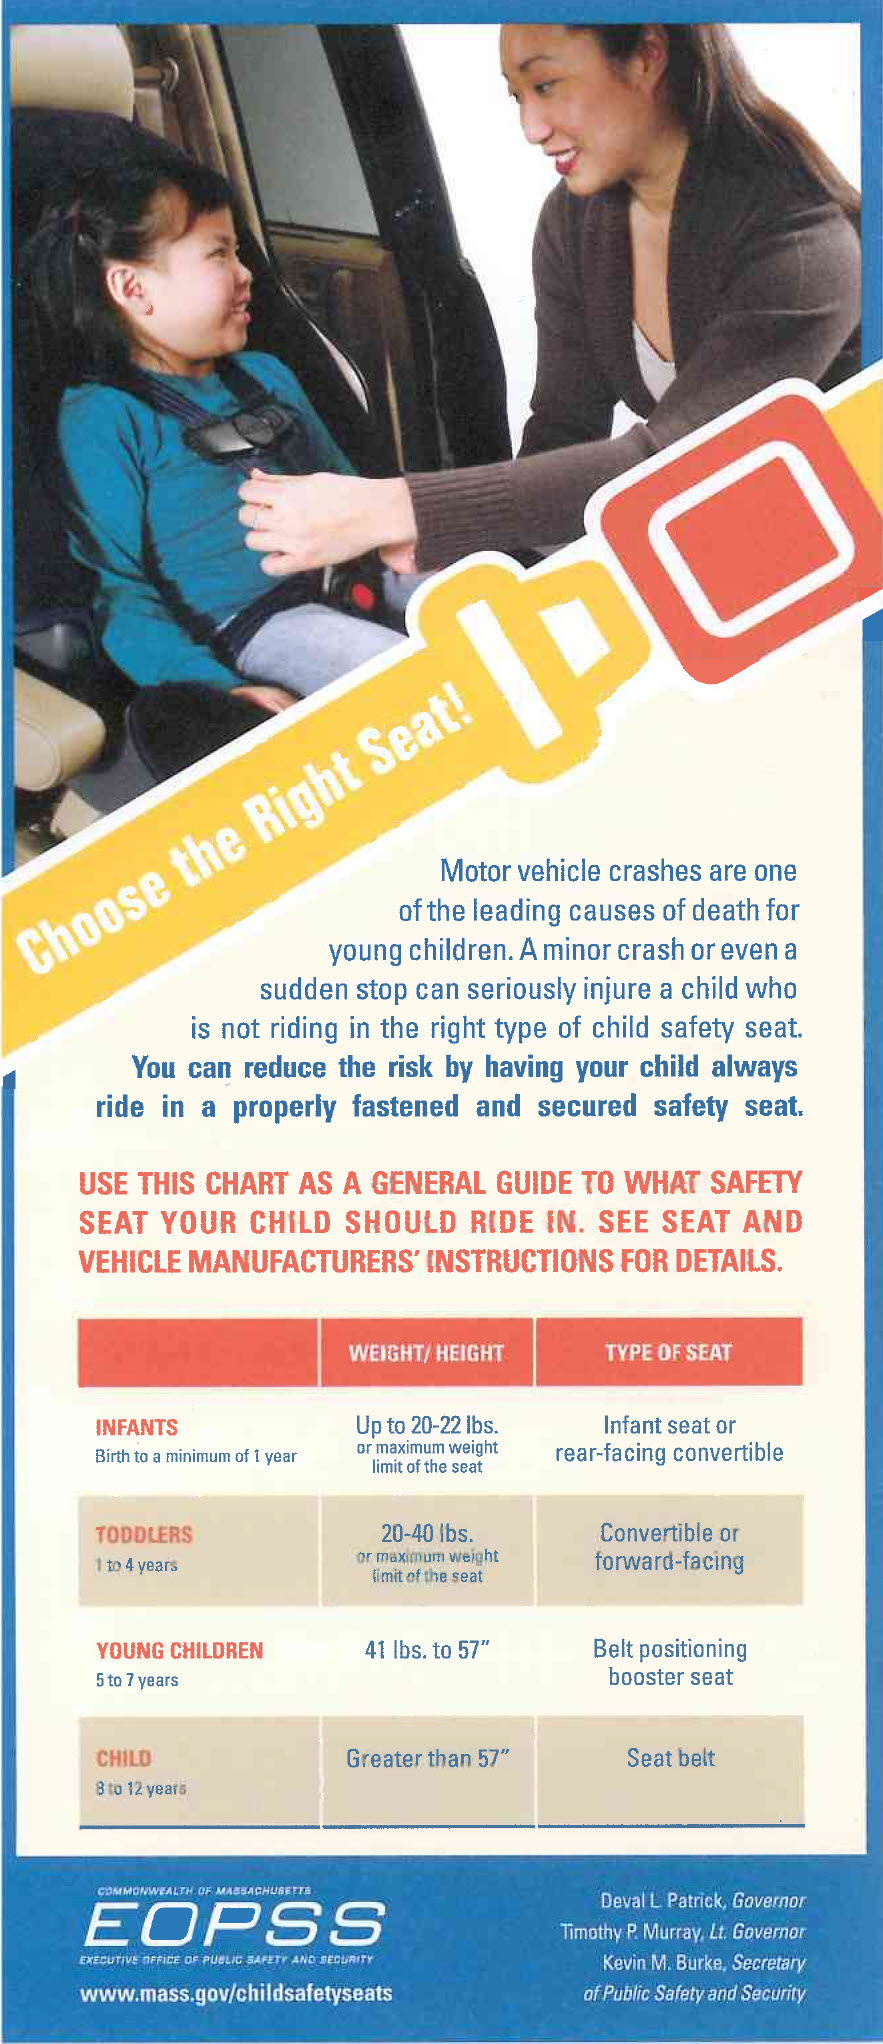 Out Theses Handy Tips On Child Safety Belt Laws From The Commonwealth Of Massachusetts EOPSS Executive Office Public Security